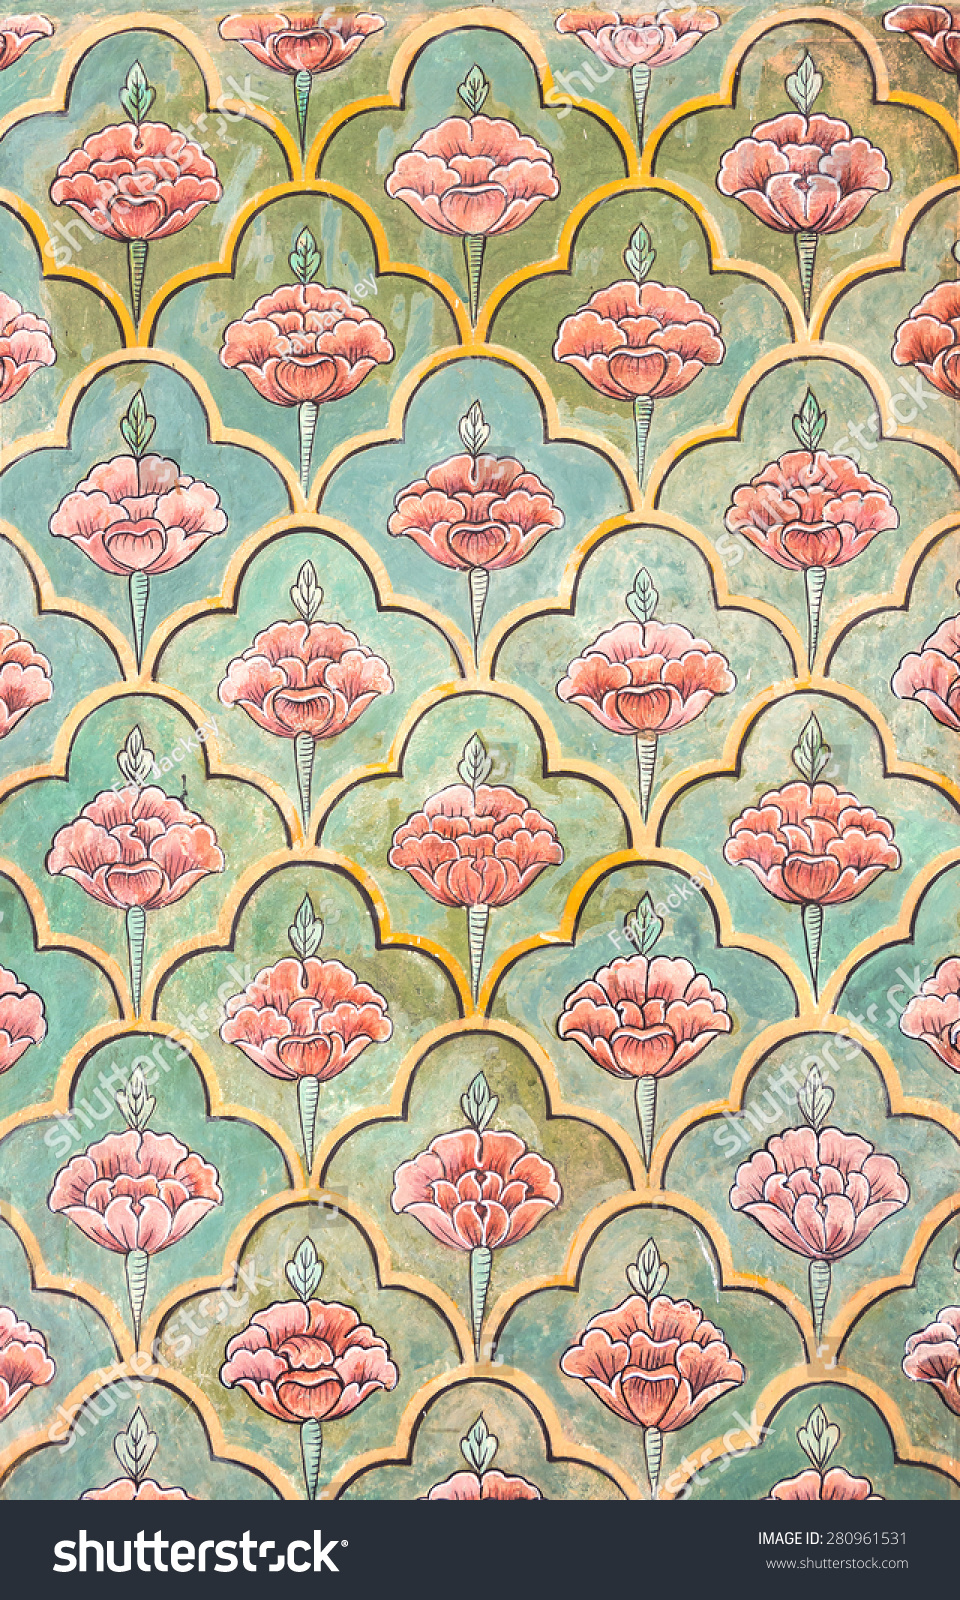 Mughal wall paintings jaipur city palace stock photo for Wallpaper for home walls jaipur